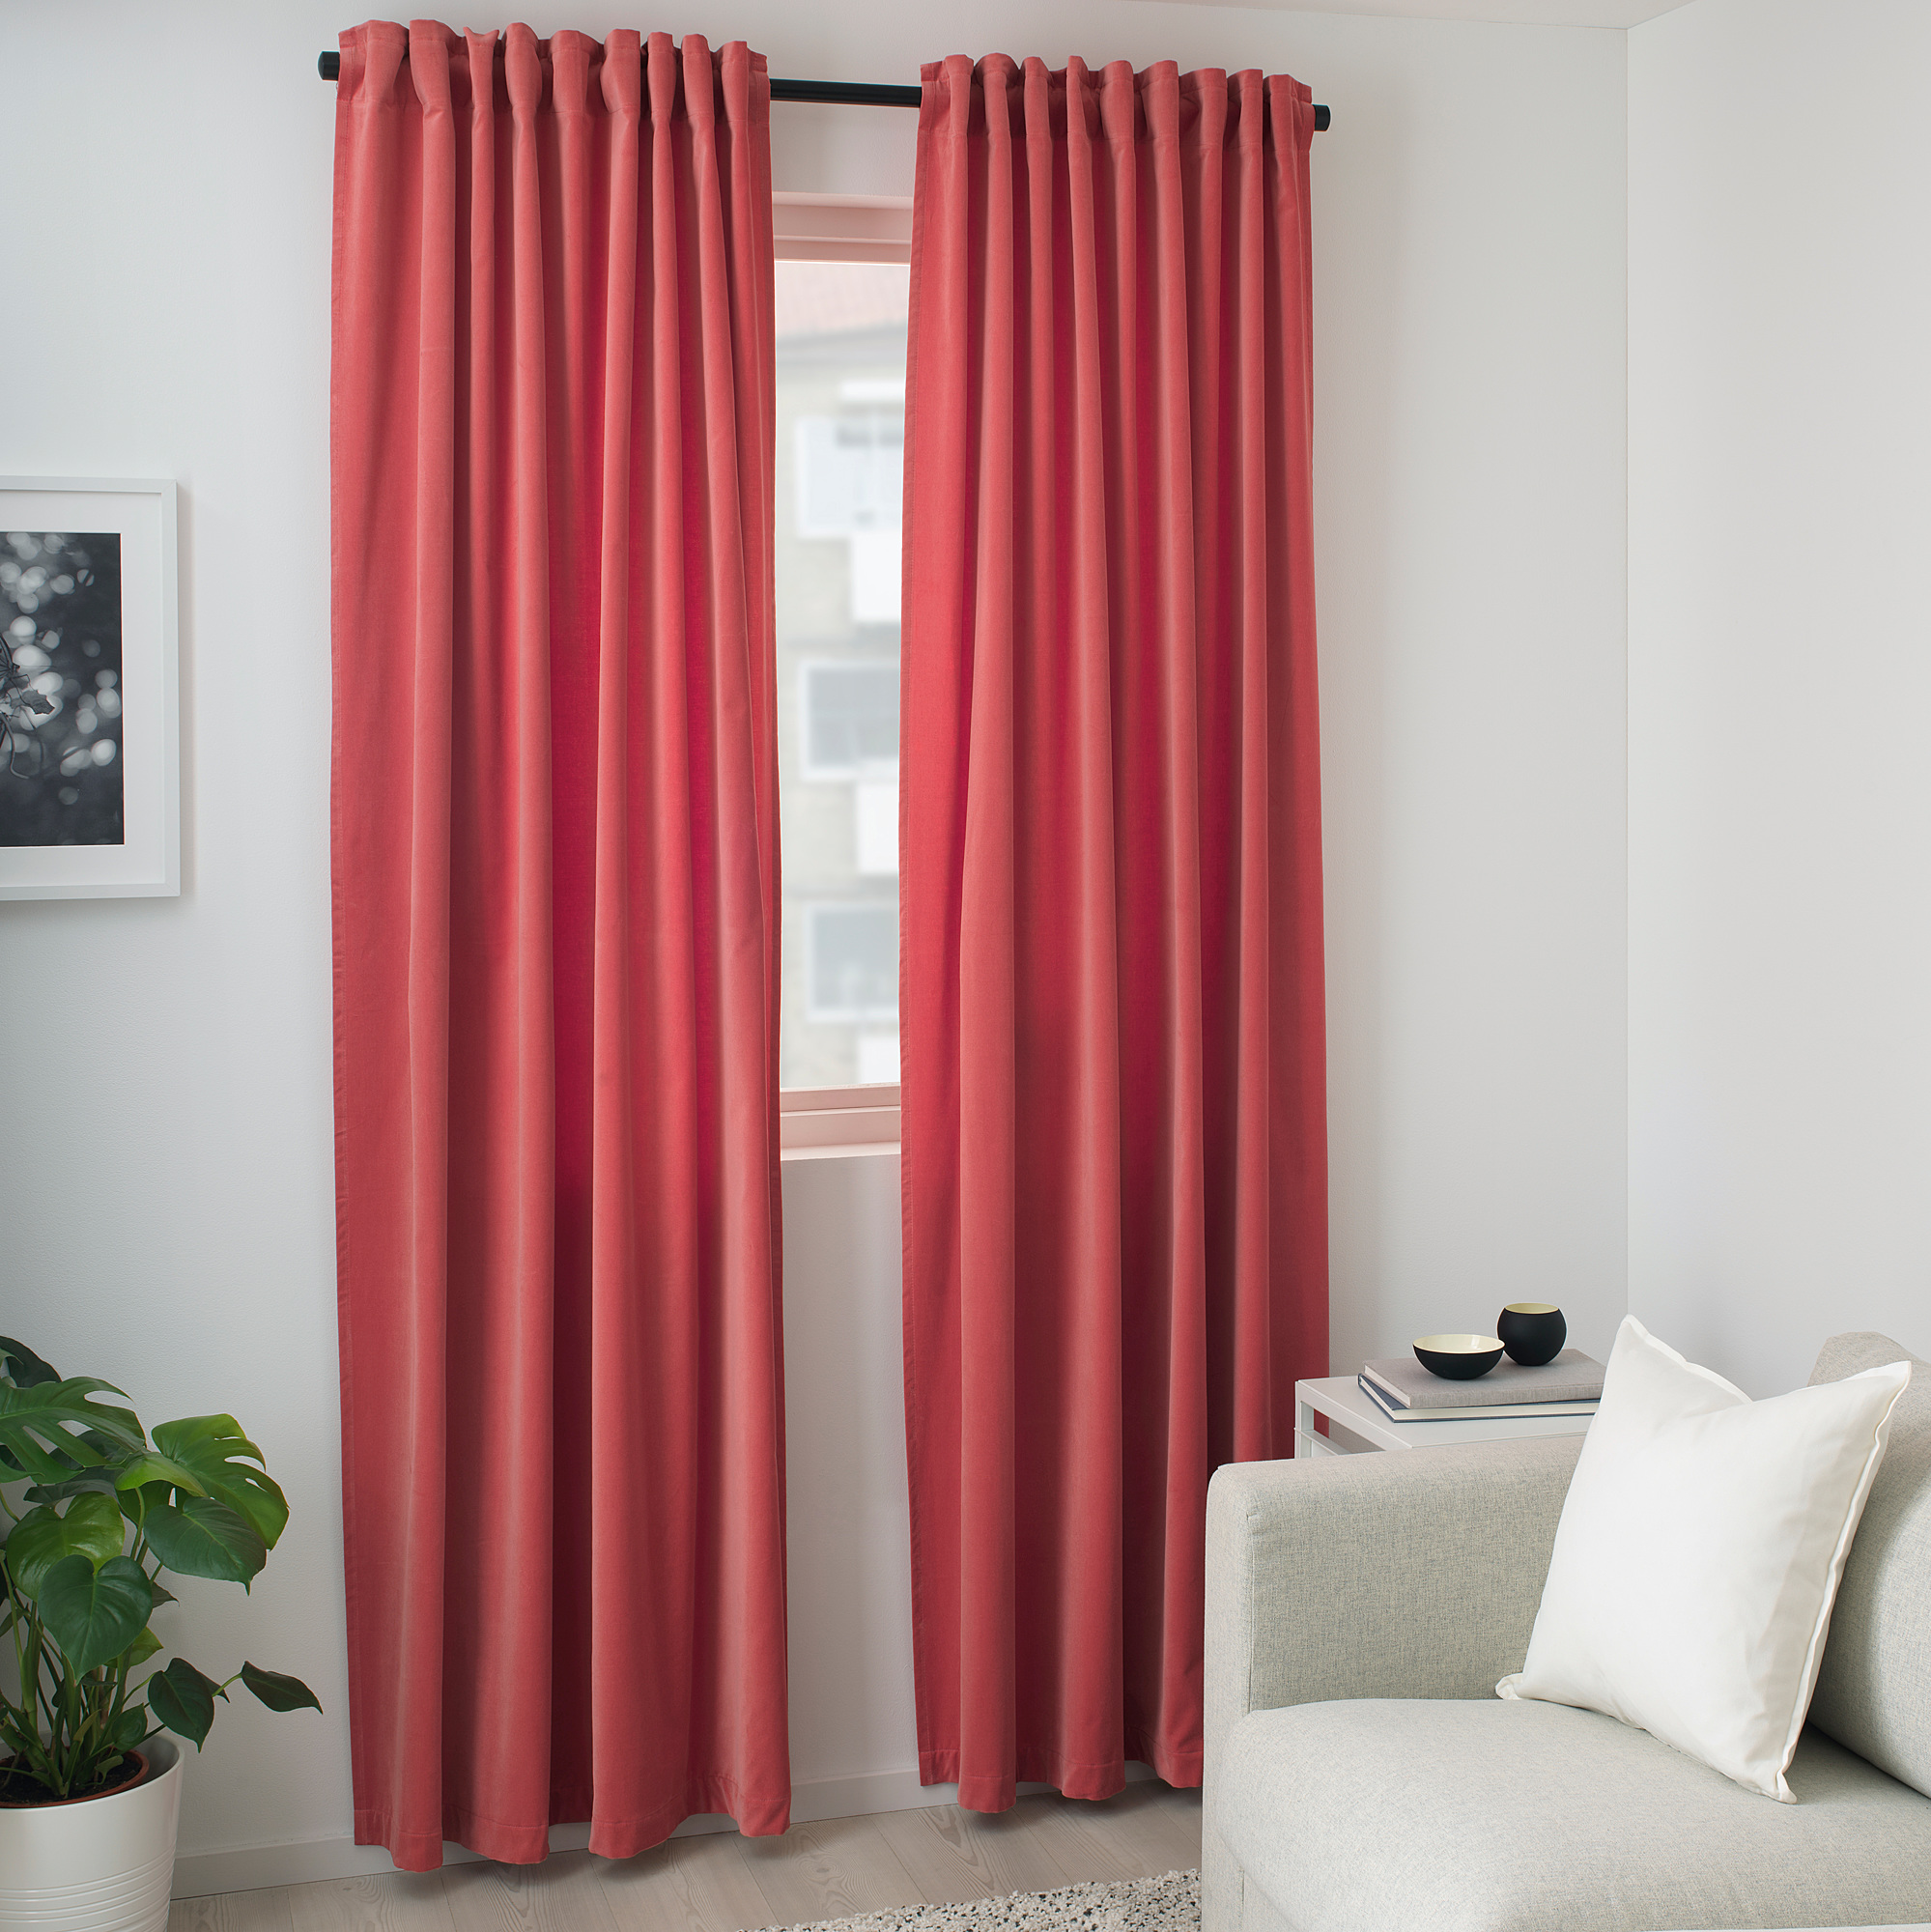 Sanela Room Darkening Curtains 1 Pair Light Brown Red